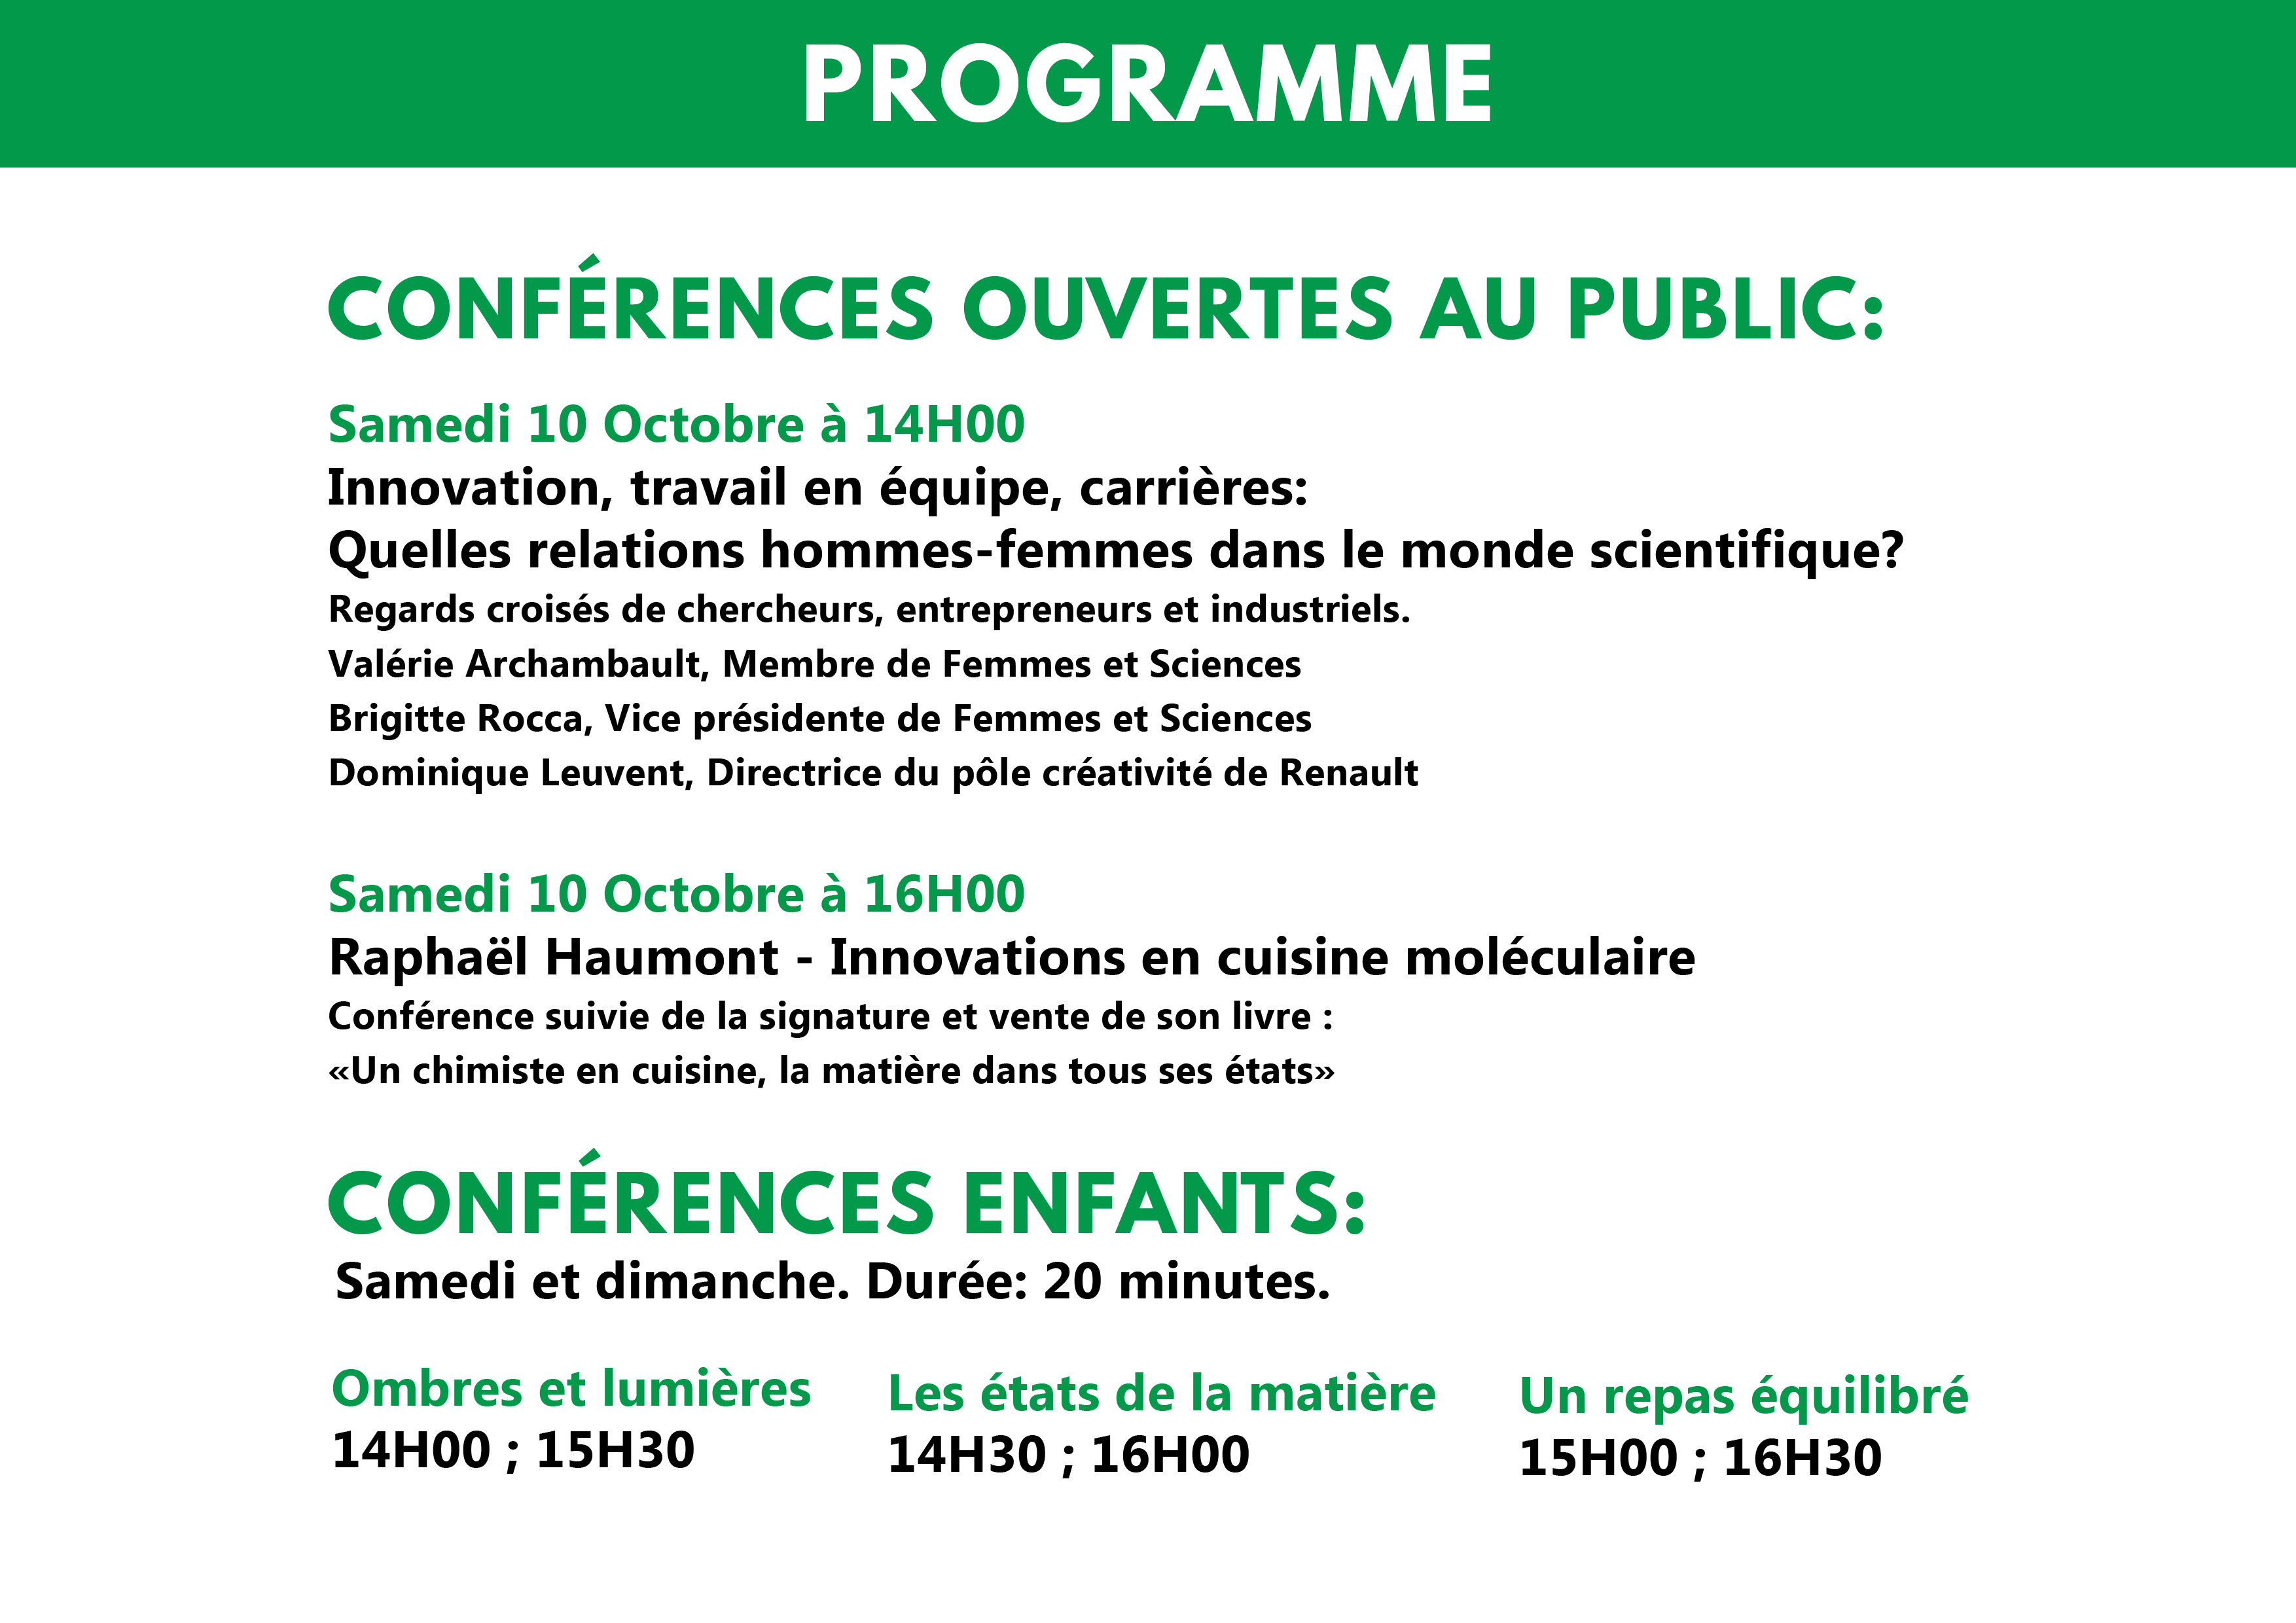 Programme FDS 2015